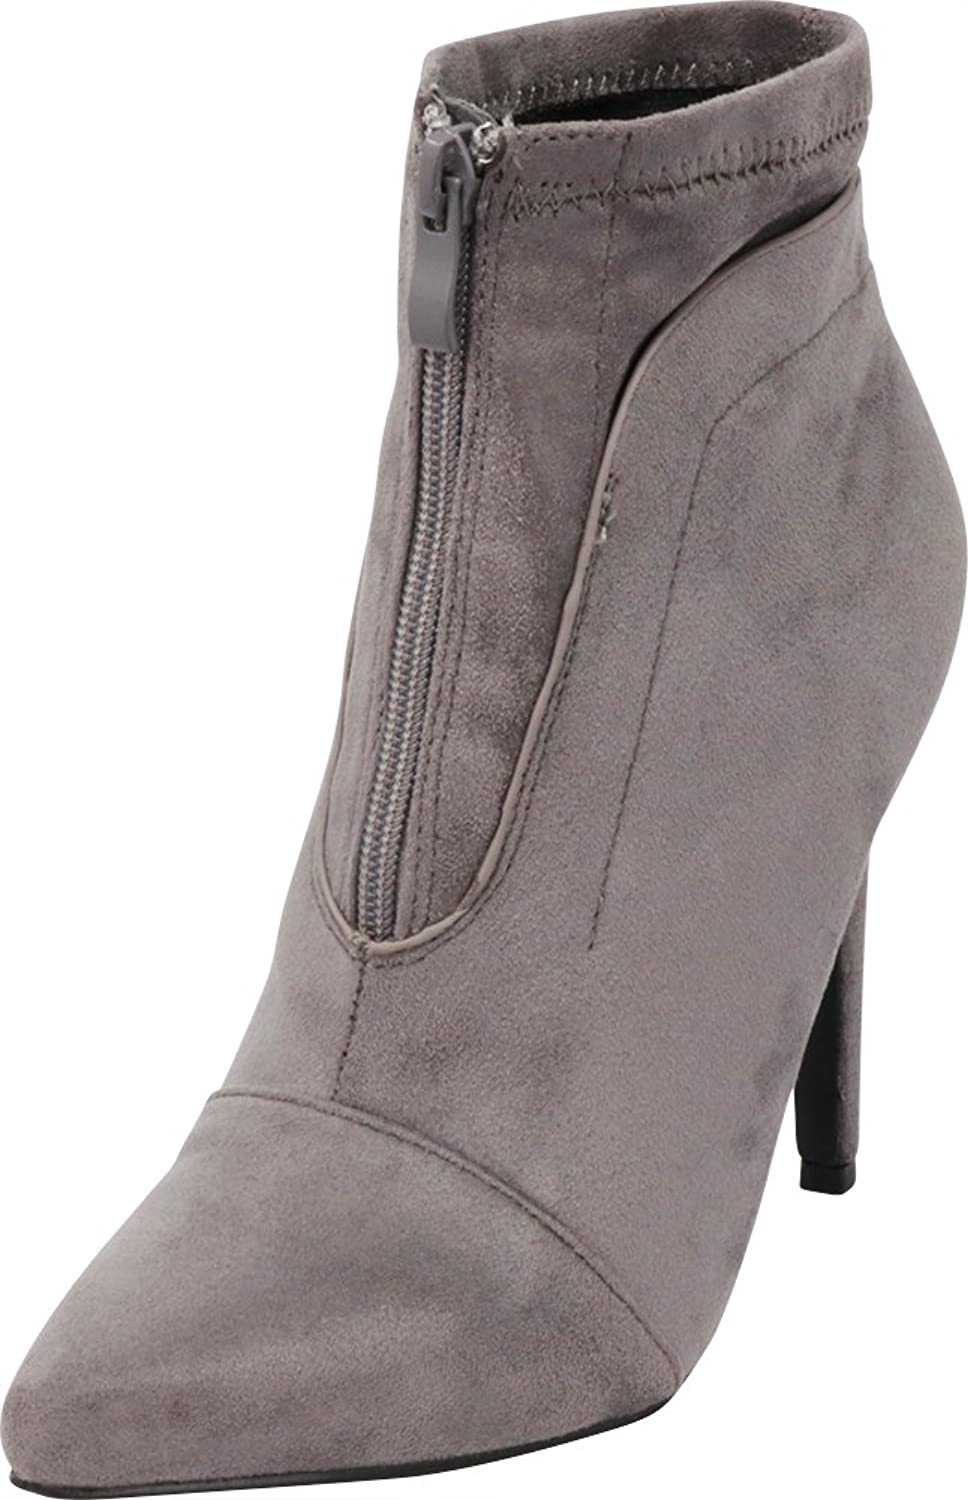 Cambridge Select Women's Closed Pointed Toe Front Zip Stiletto High Heel Ankle Bootie